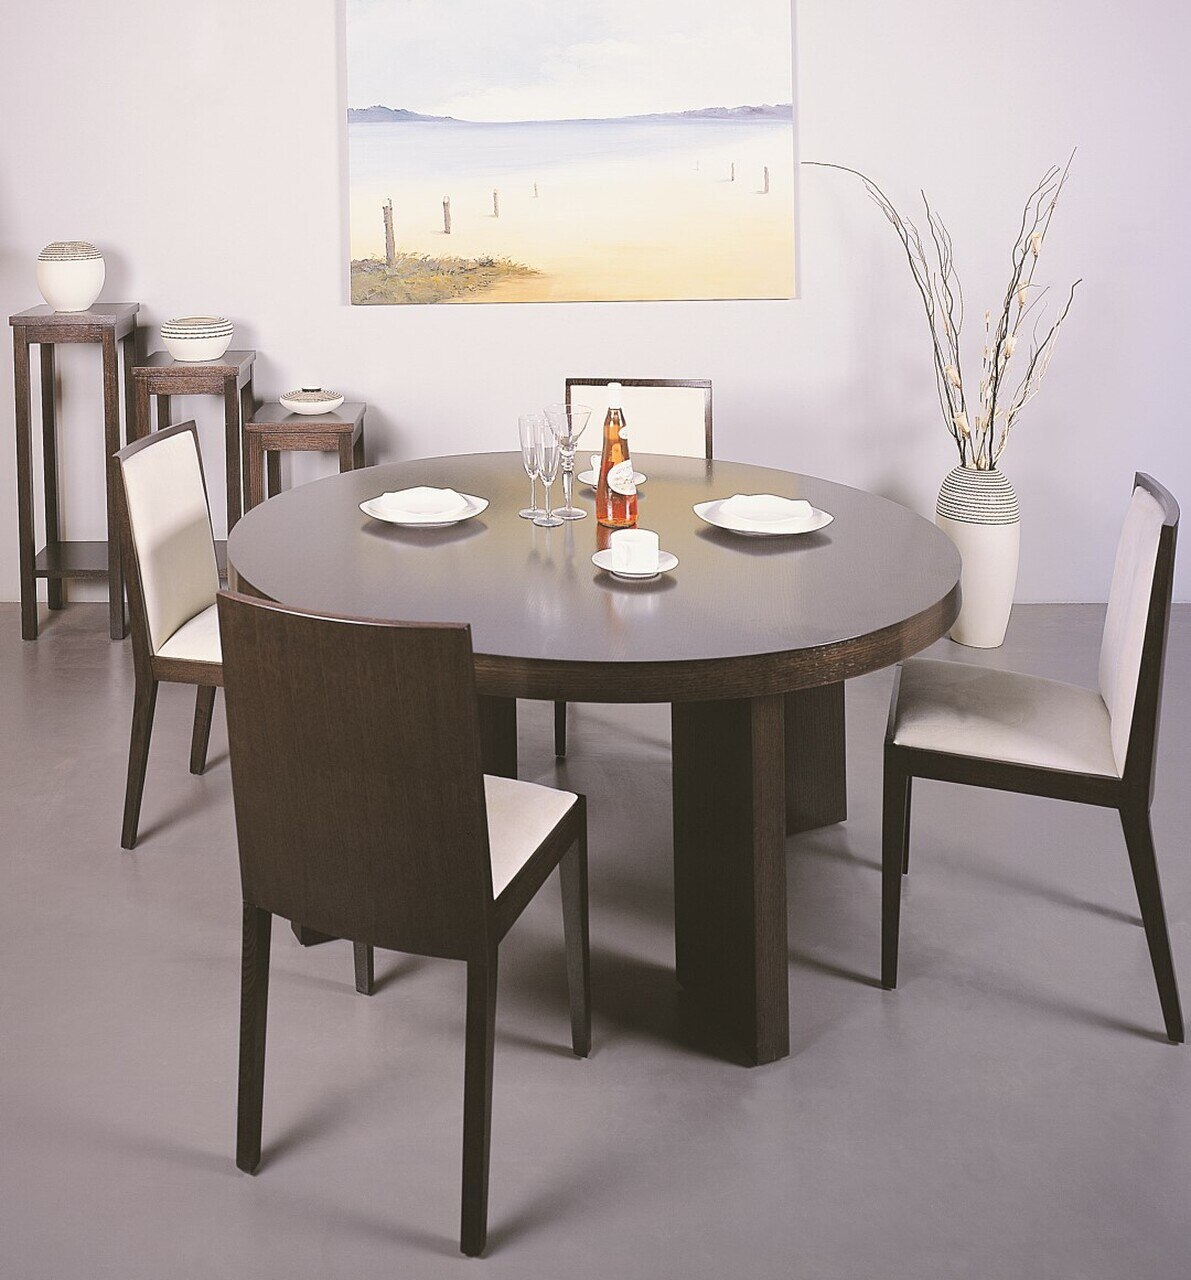 Dining Table Set Modern: Luxury Round Wooden With Microfiber Seats Modern Dining